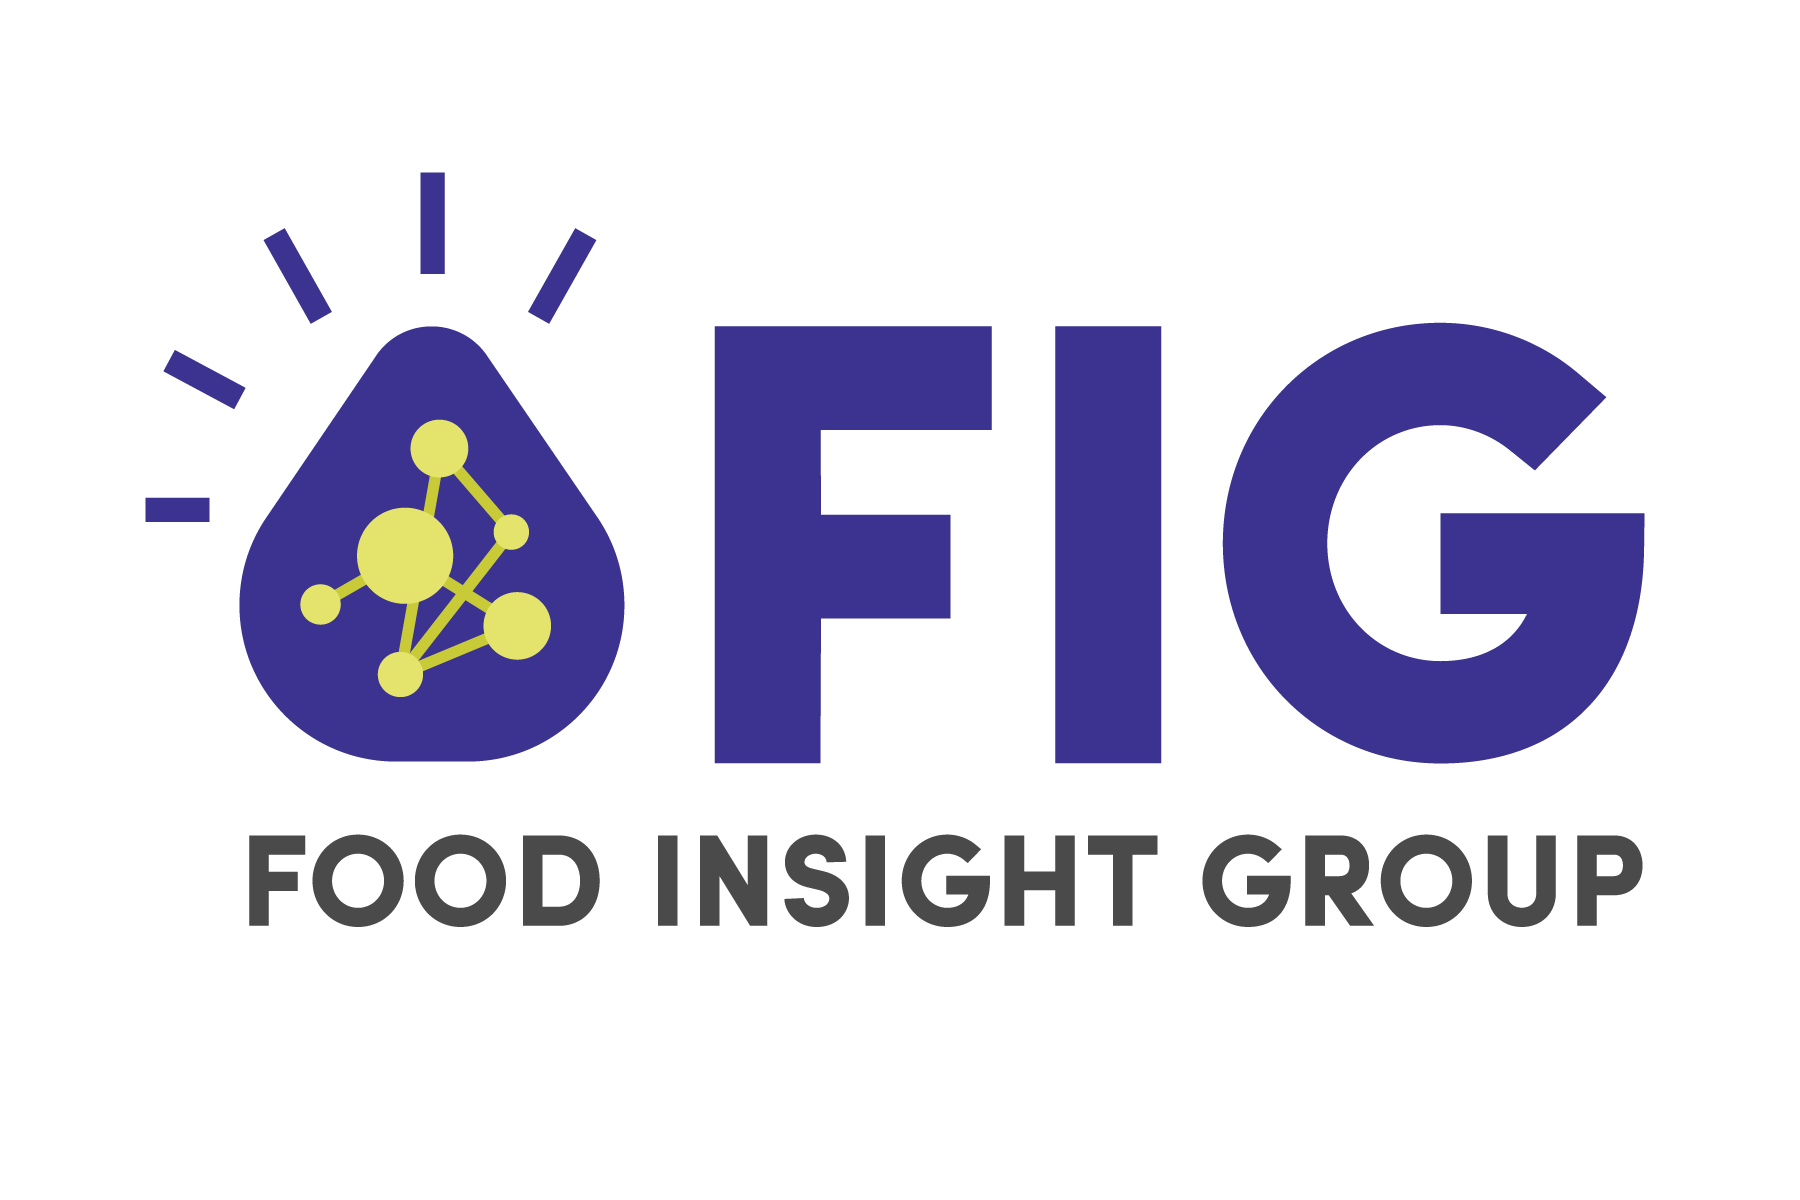 Food Insight Group